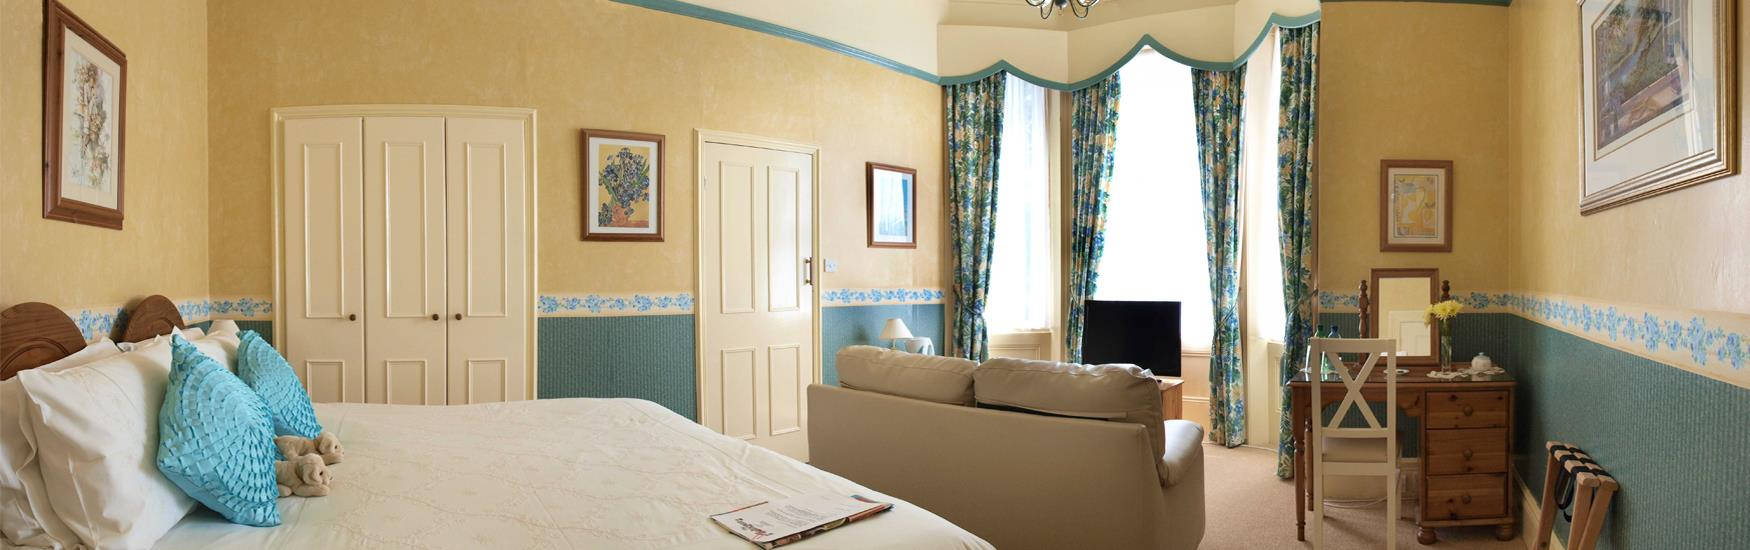 Beautiful B&B and Guest Accommodation in Bournemouth